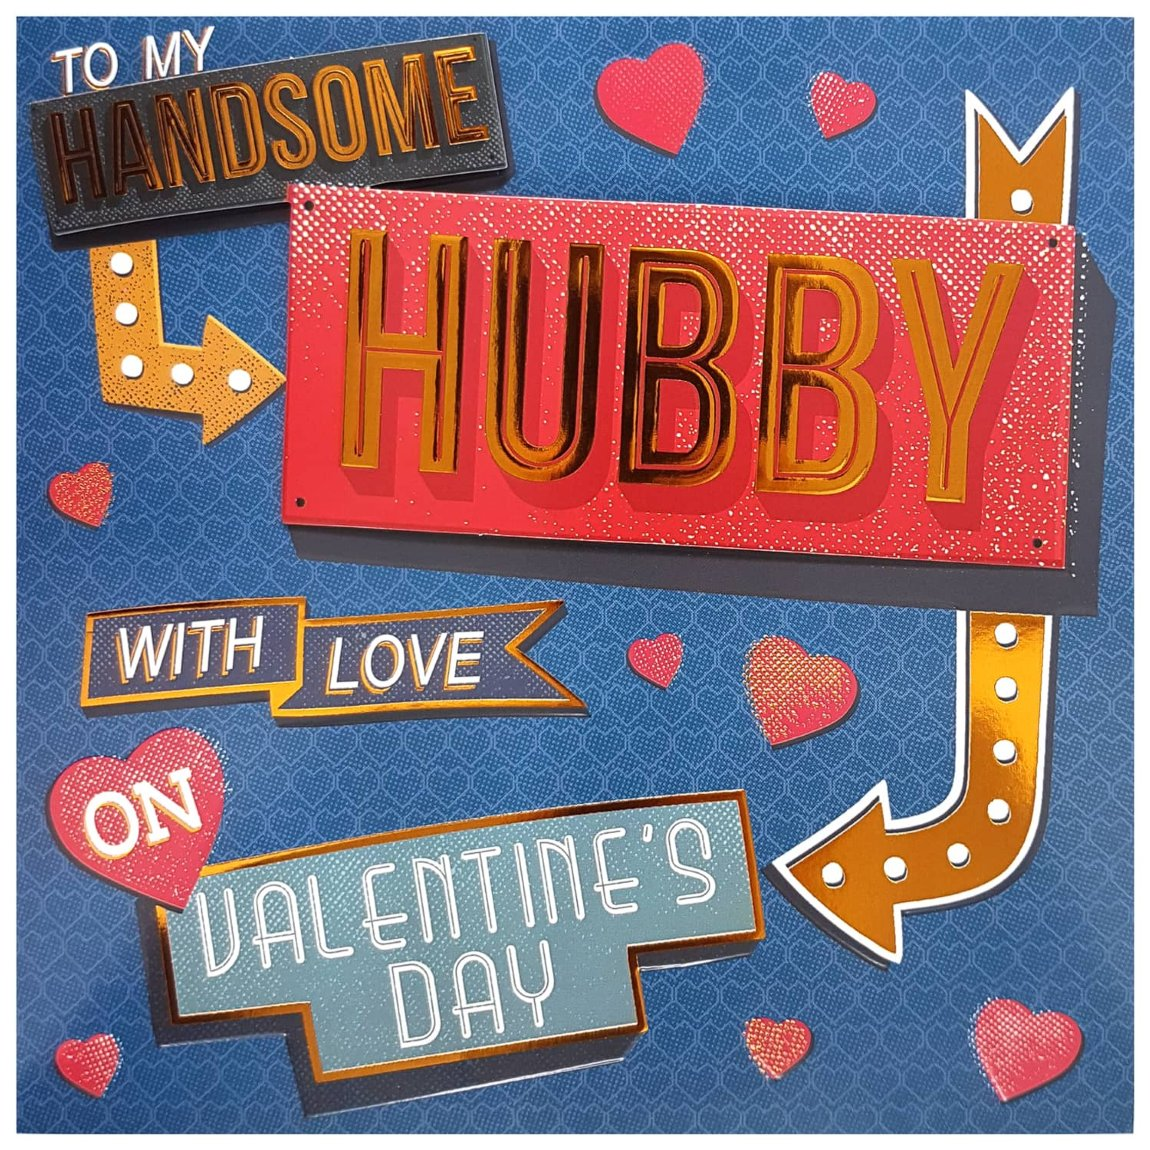 Handsome Hubby - Valentine's Day Card